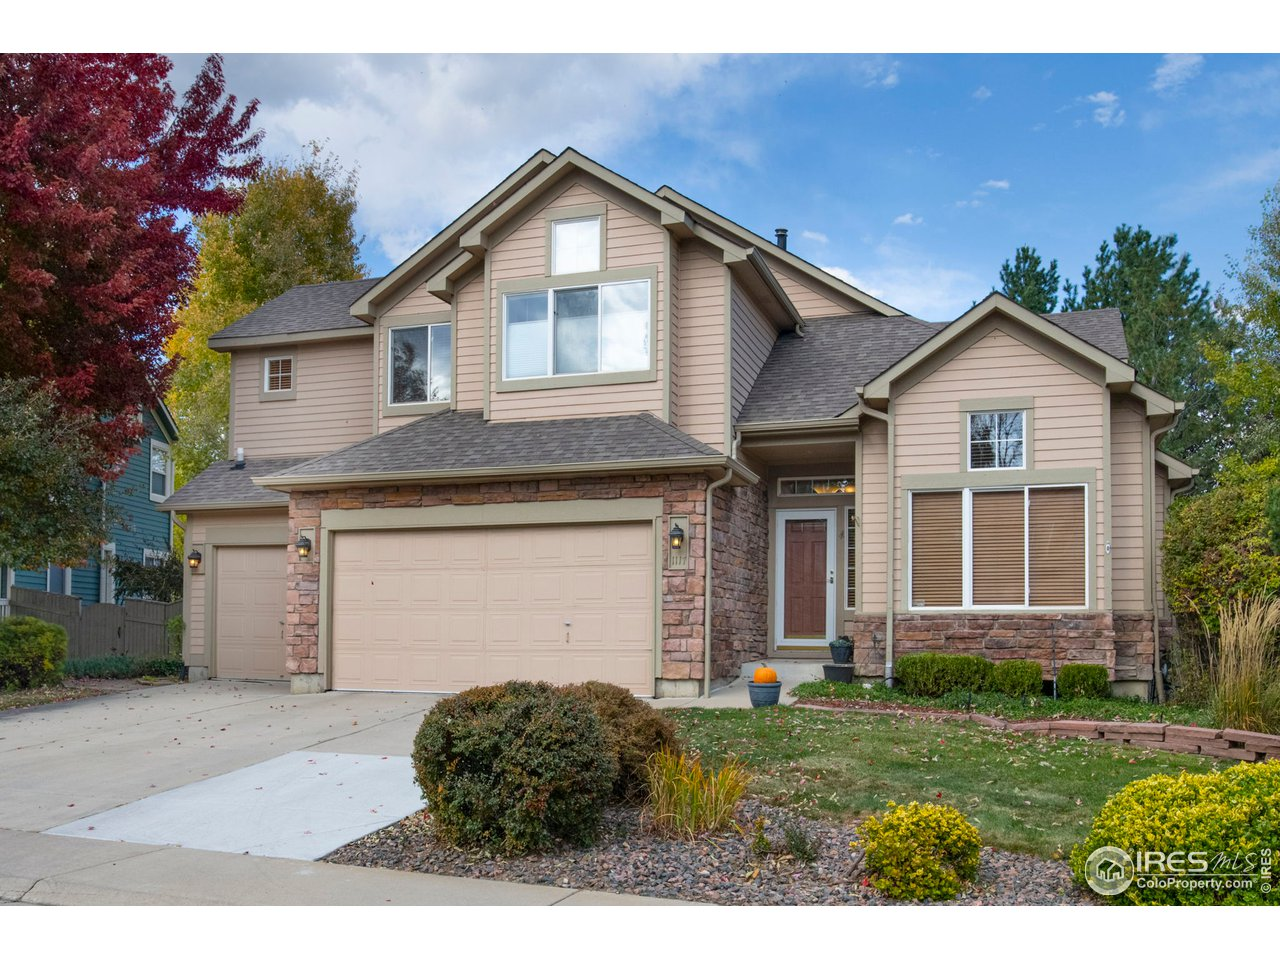 1117 Chestnut Dr, Longmont CO 80503